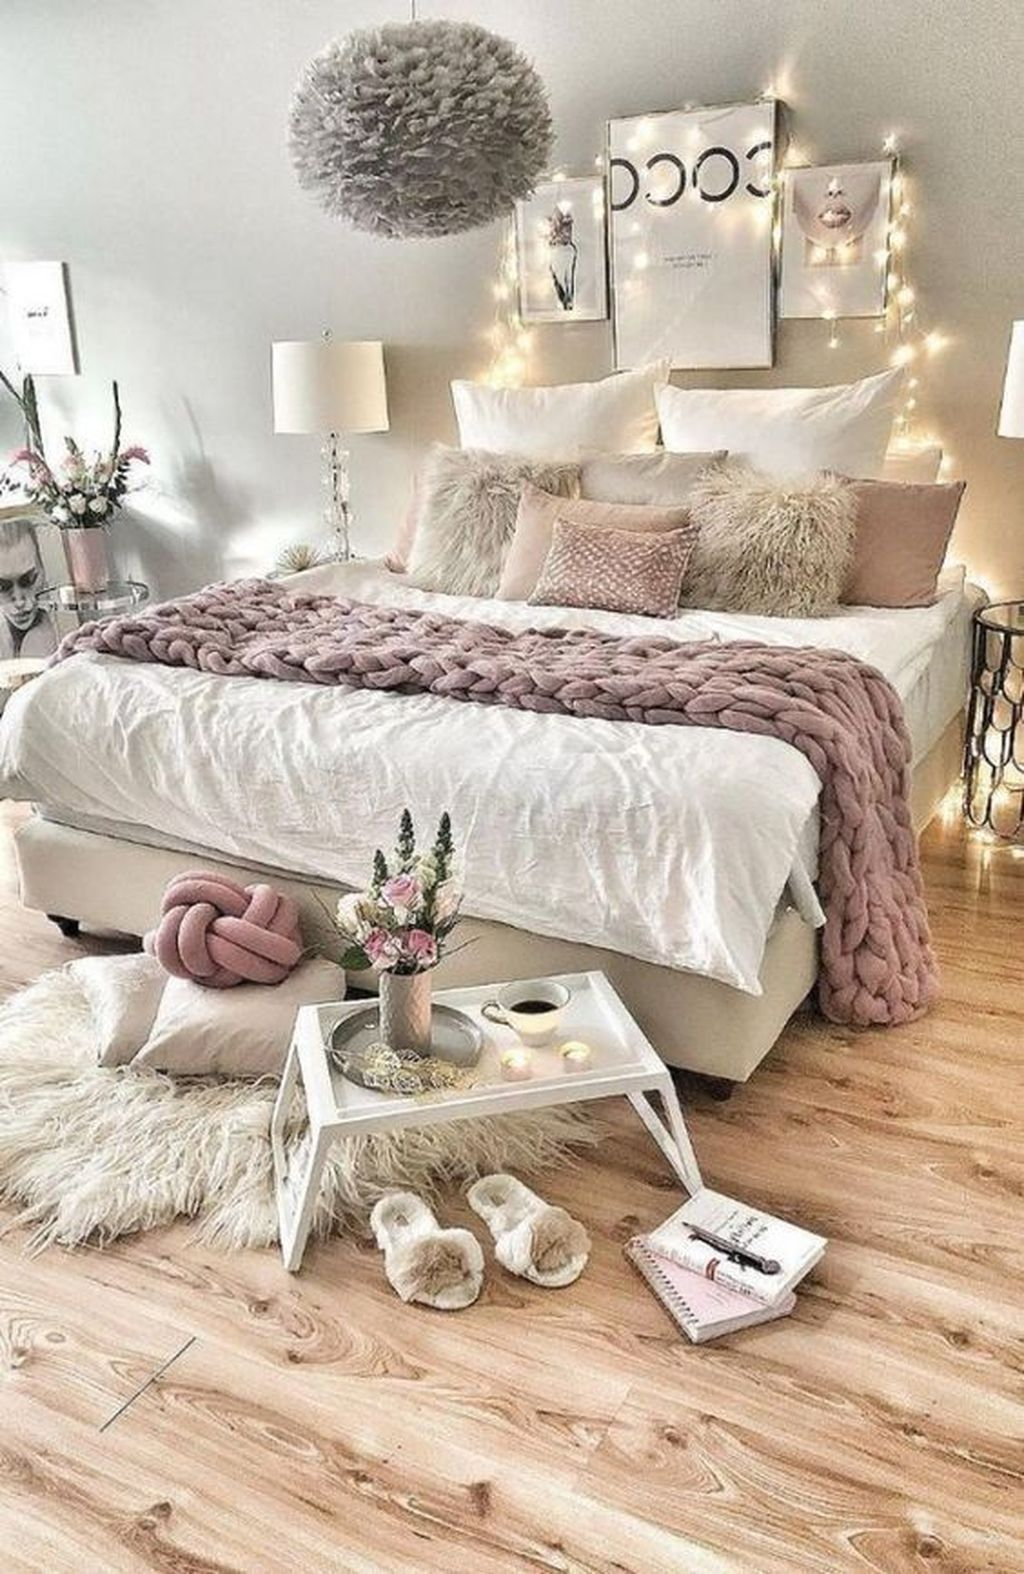 Best Teenager Bedroom Ideas With Awesome Decor 30